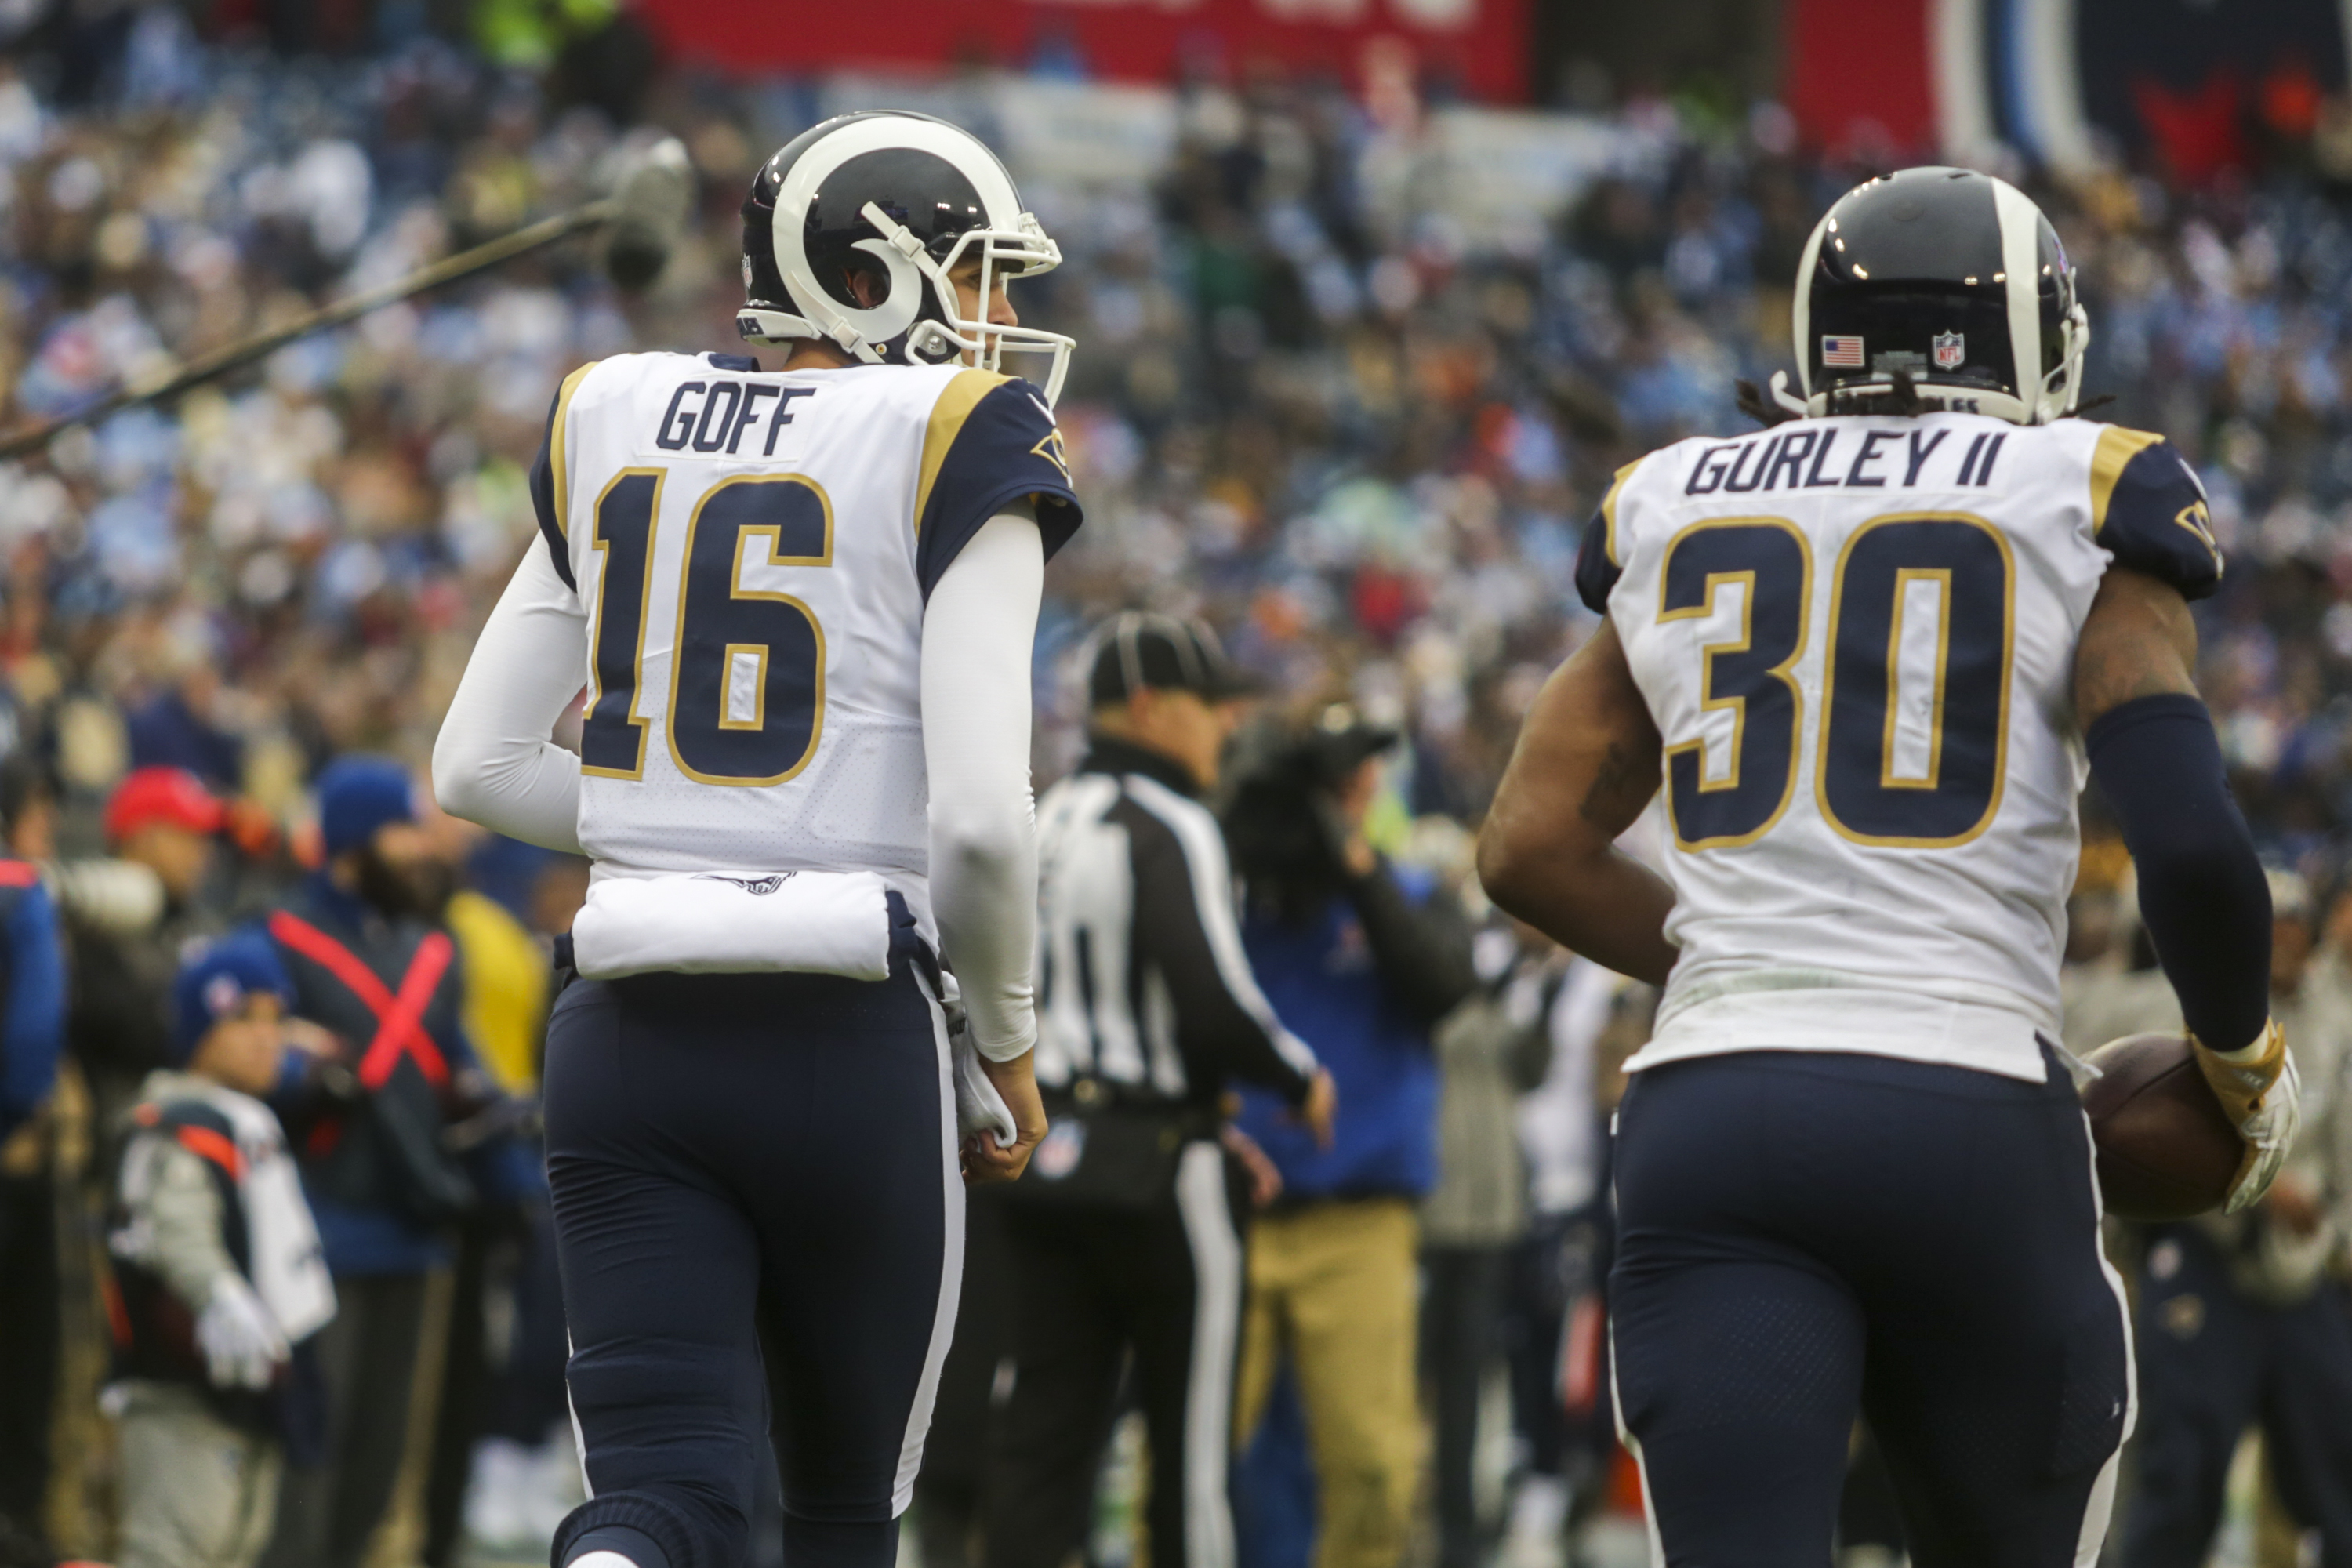 Los Angeles Rams QB Jared Goff and RB Todd Gurley come off the field against the Tennessee Titans